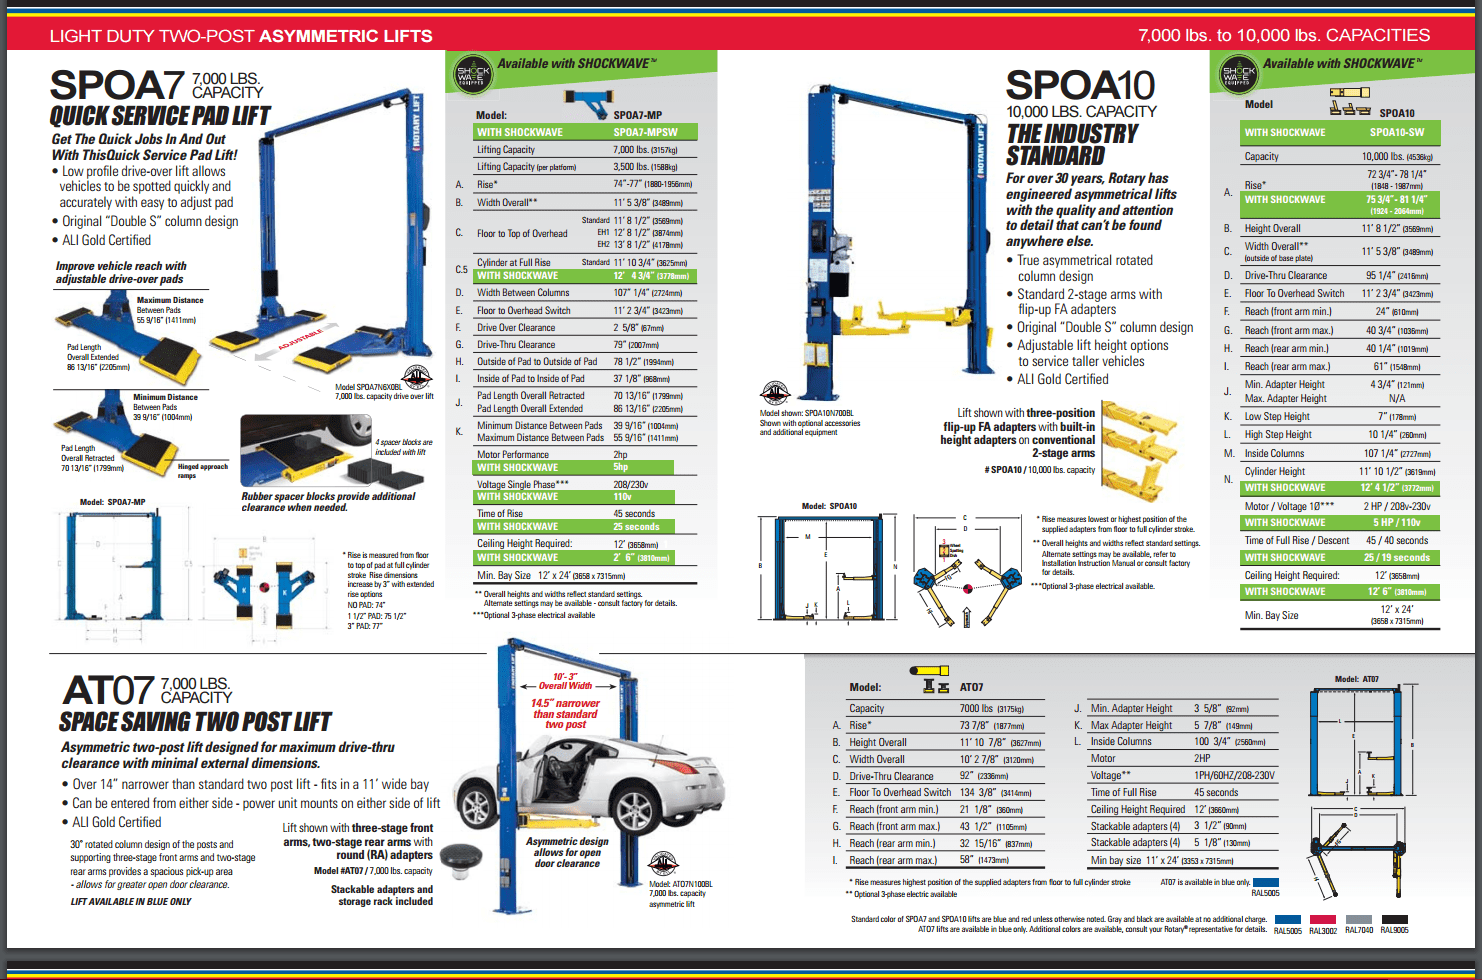 spoa7-at07-spoa10-rotary-lift-shockwave-10000lbs-guide-rotary-shockwave-revolution-2post-lift-4post-lift-repair-service-installation-fast-women-harley-motocycle-lift-equipment-800-225-7234